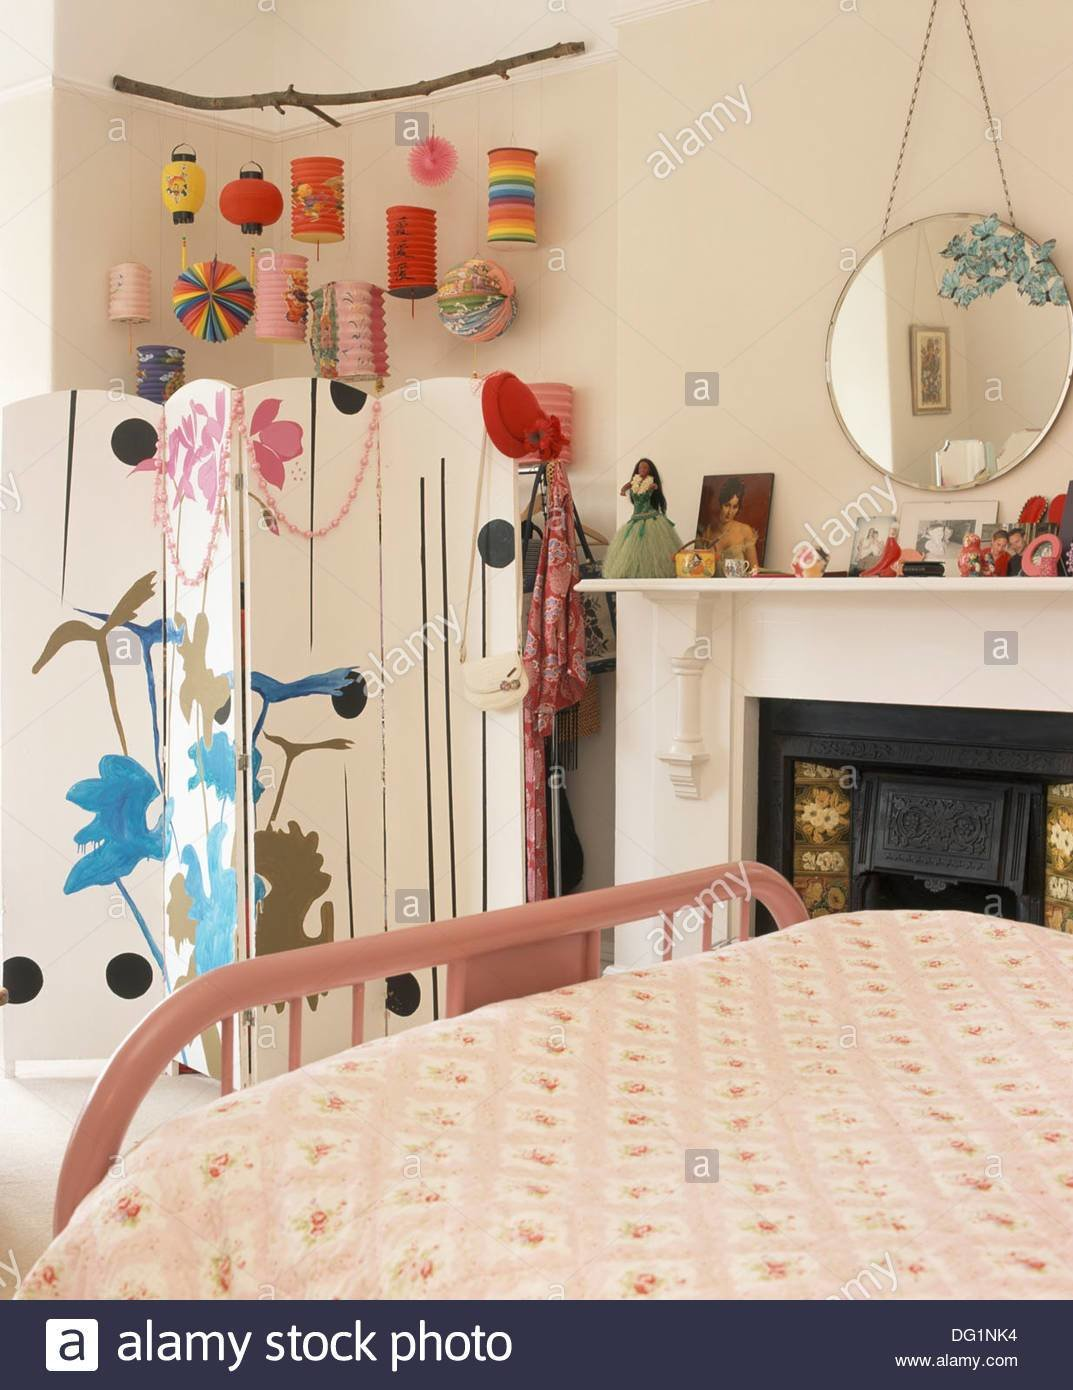 Best Hanging Paper Lanterns In Bedroom Www Indiepedia Org With Pictures